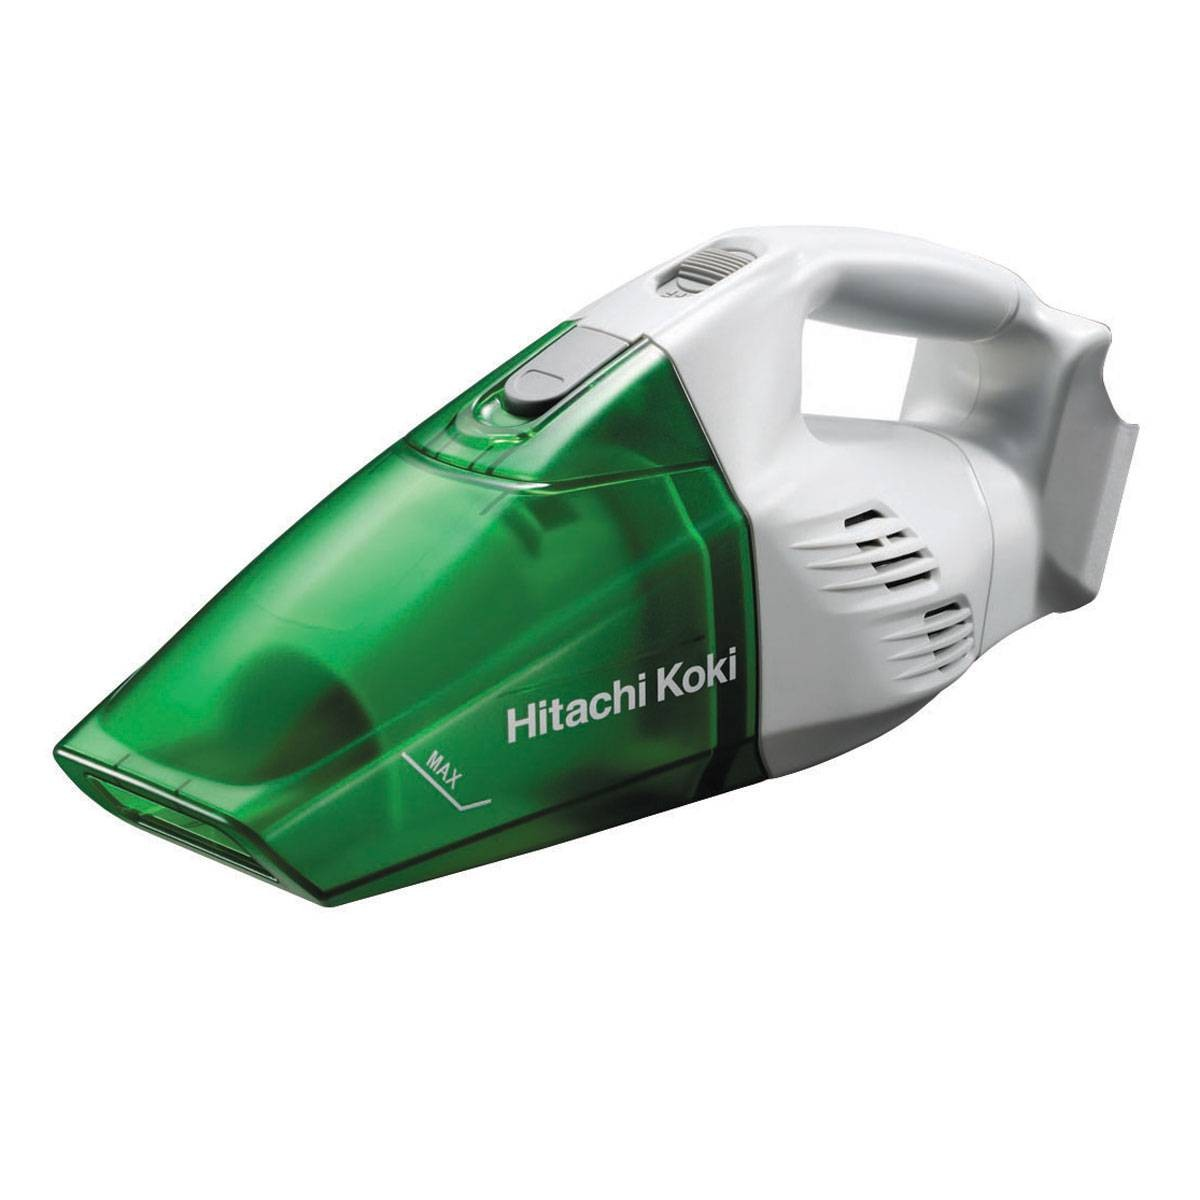 Hitachi R18DSL 18v Cordless Wet/Dry Handheld Vacuum Body Only